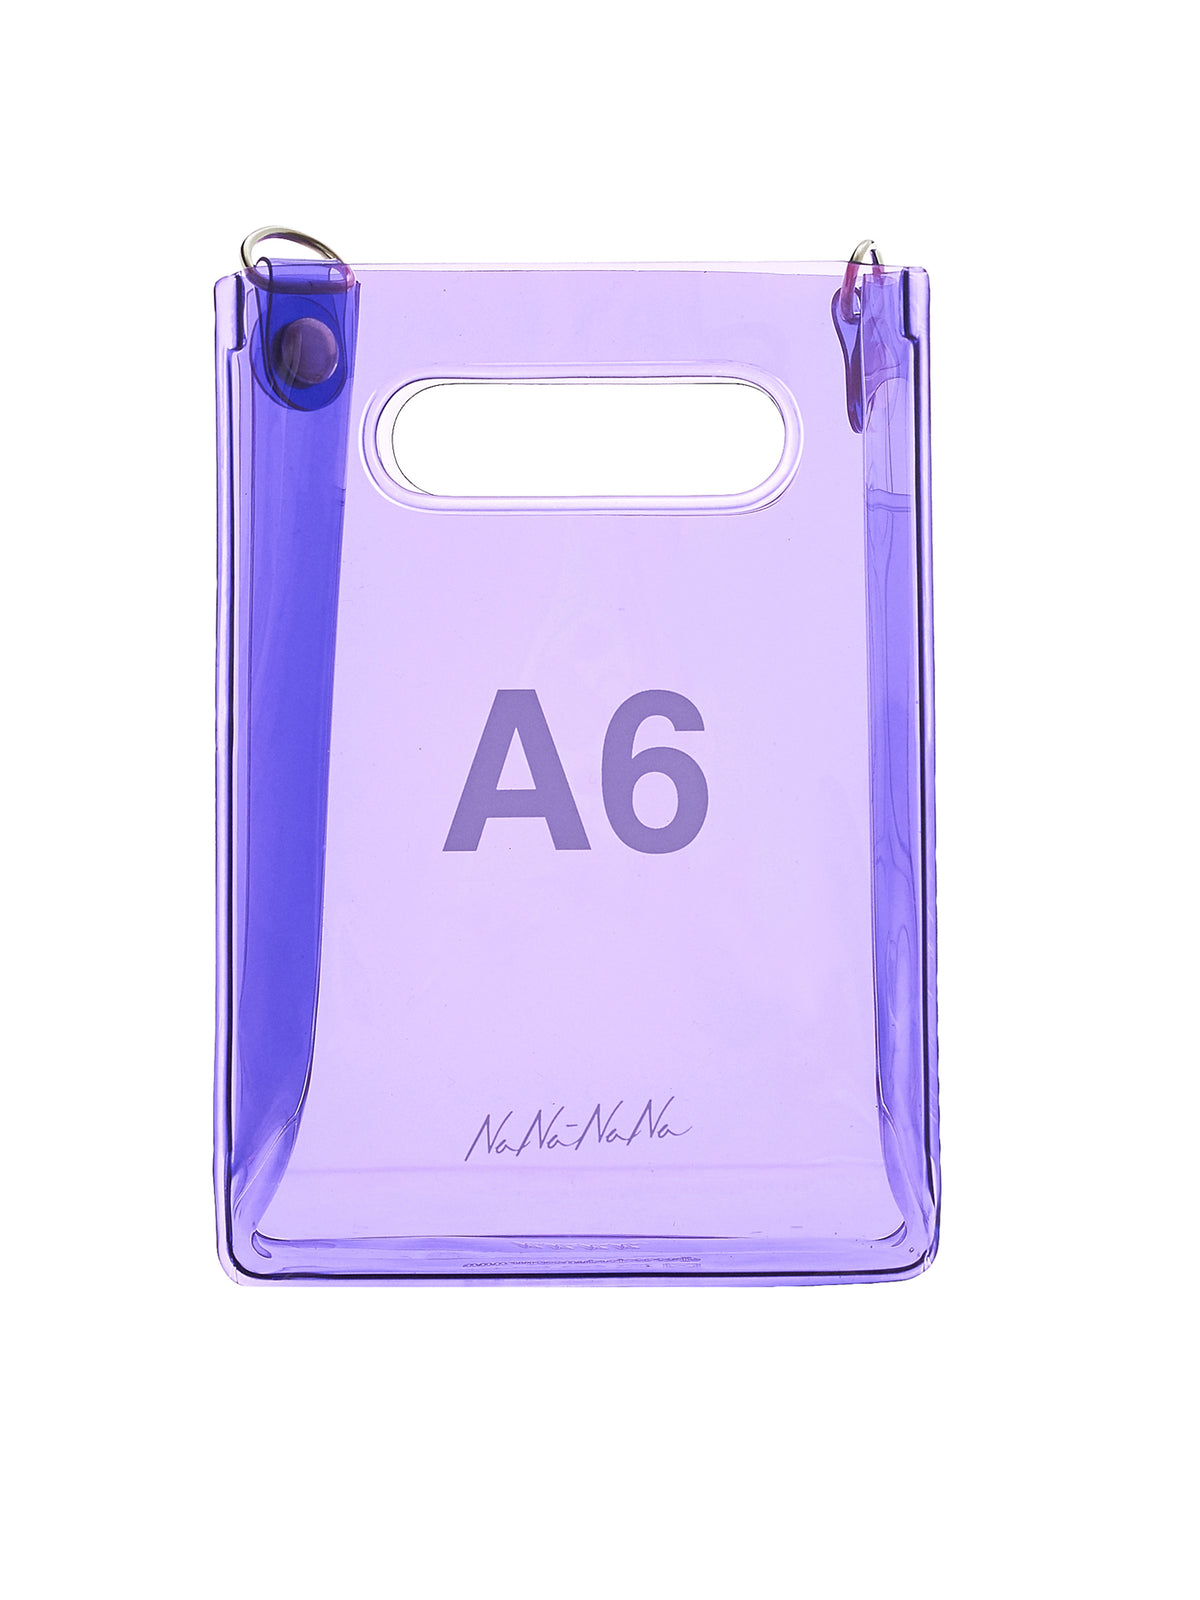 A6 PVC Bag (NA-021-A6-PURPLE)